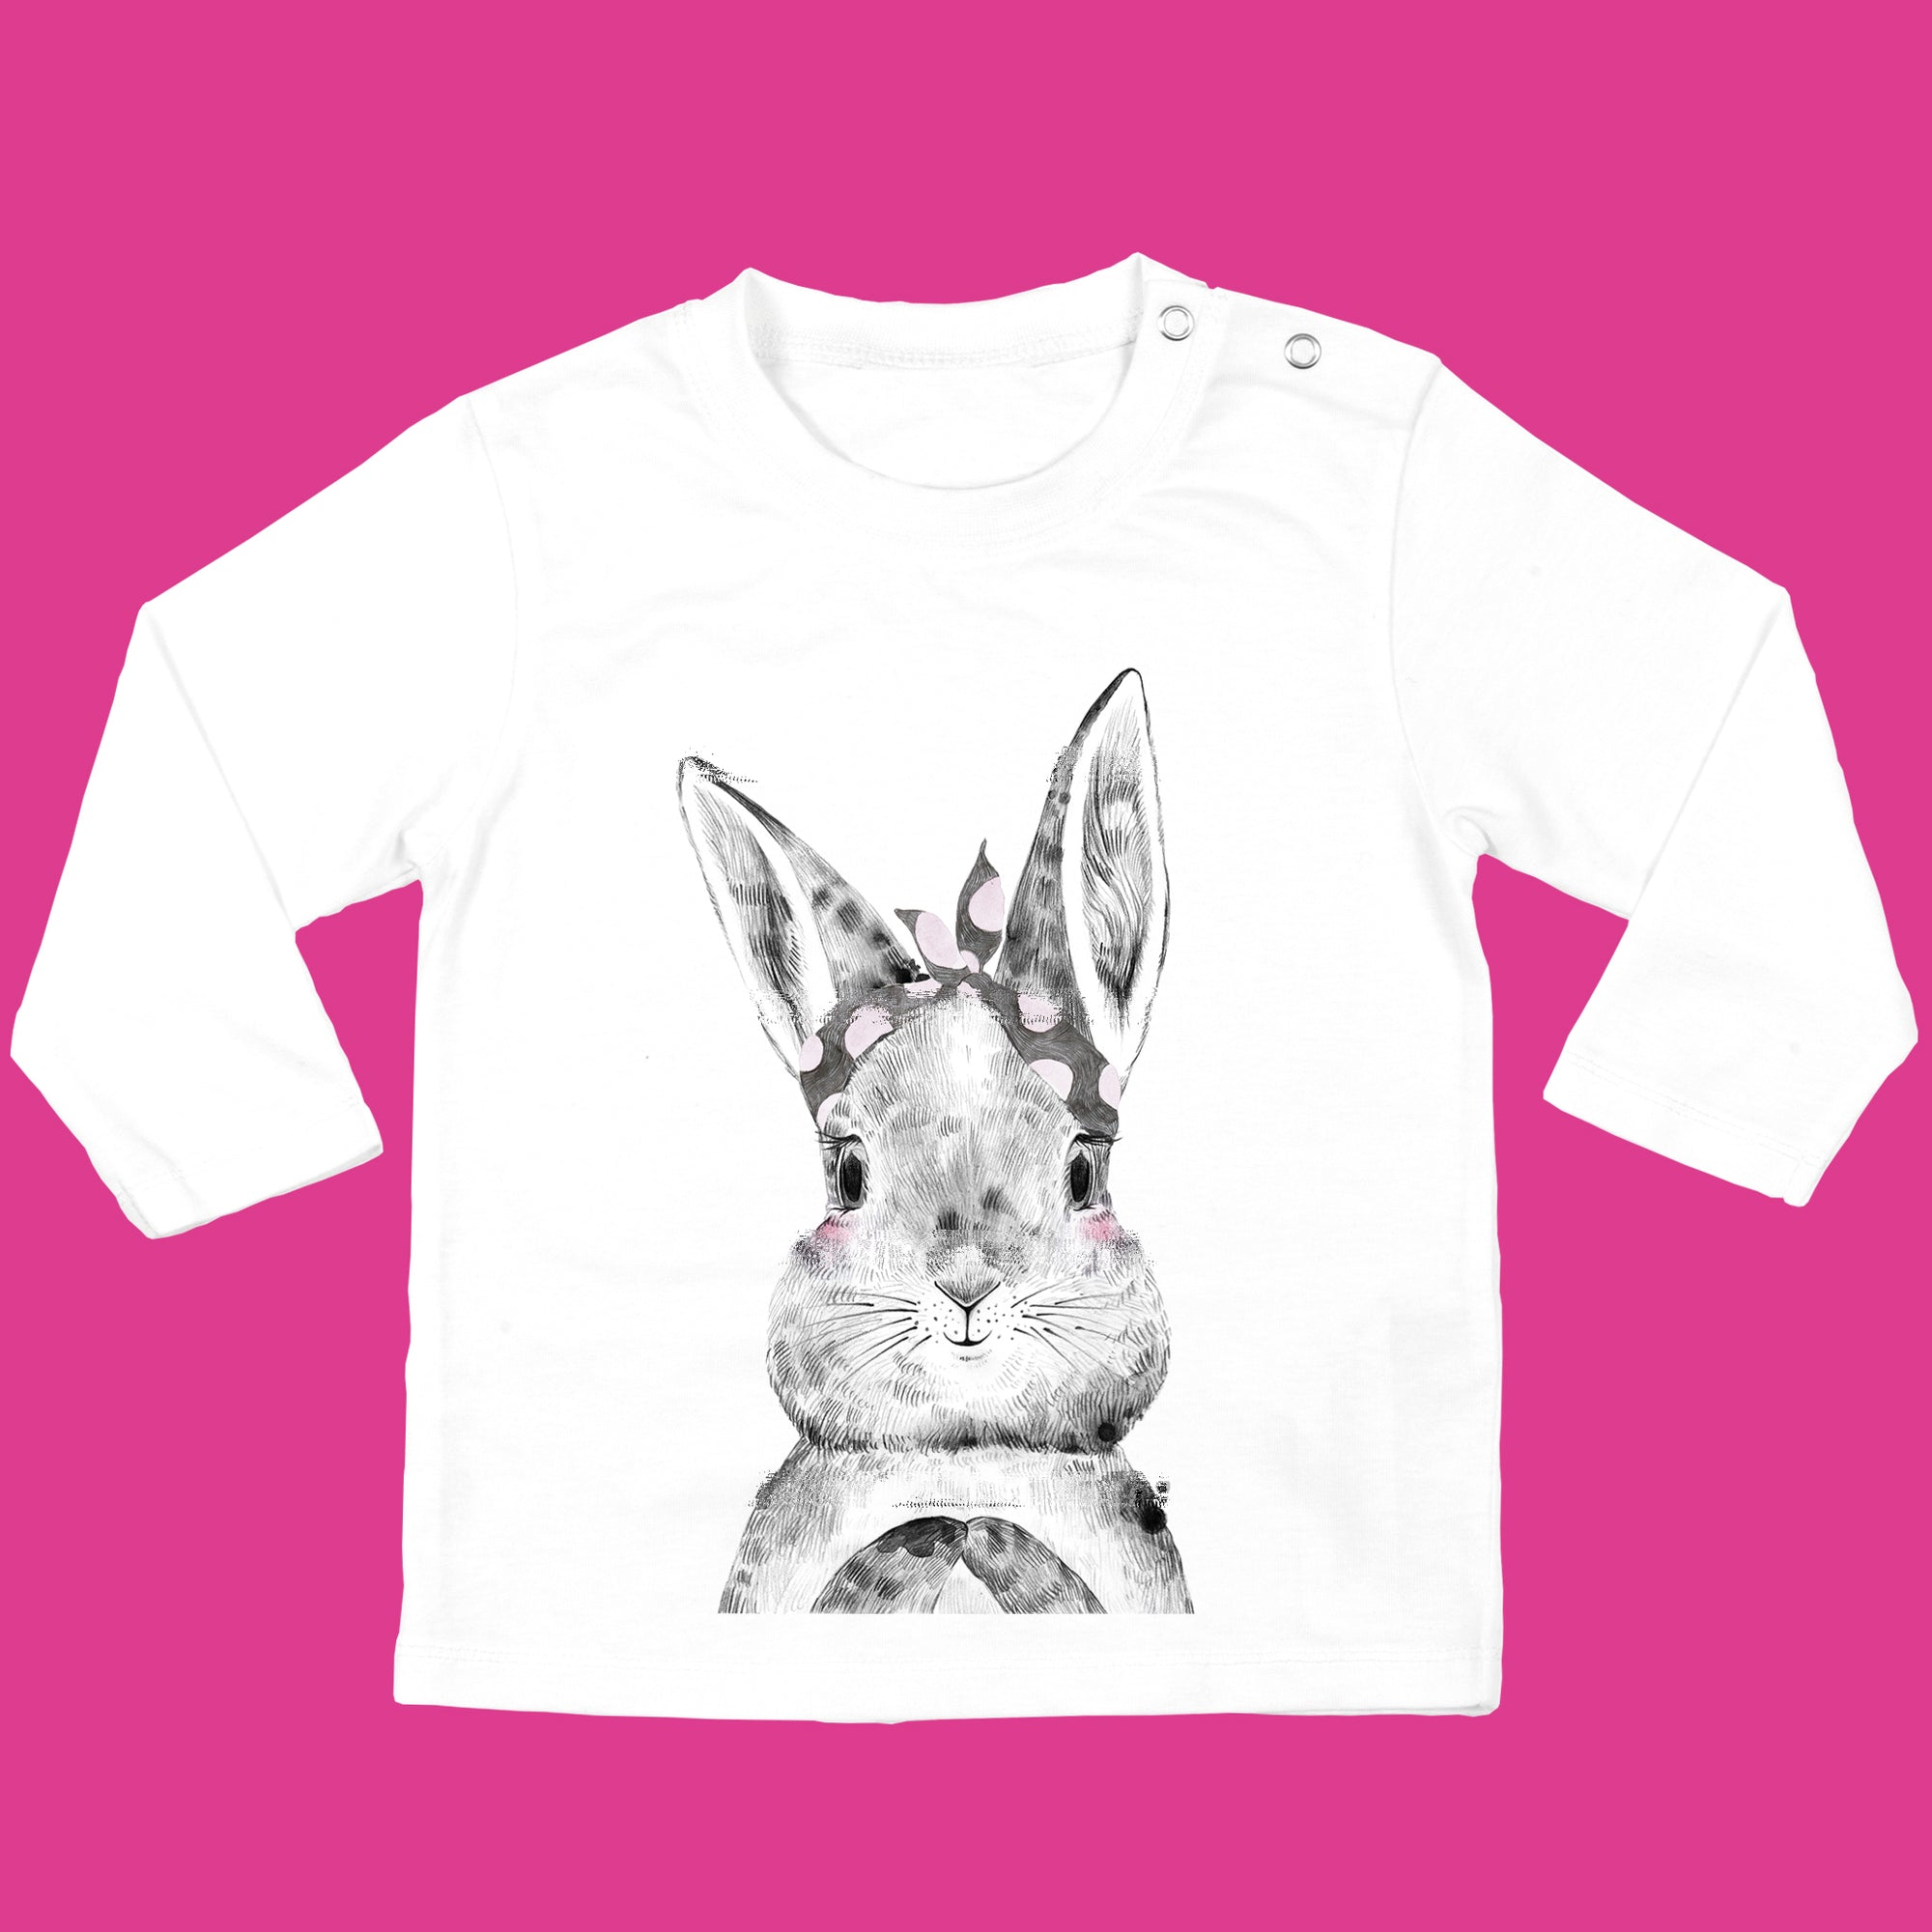 Girls Baby Bunny T-Shirt organic cotton in White - Bunny with Bow Design - Ruby and the Rainbow